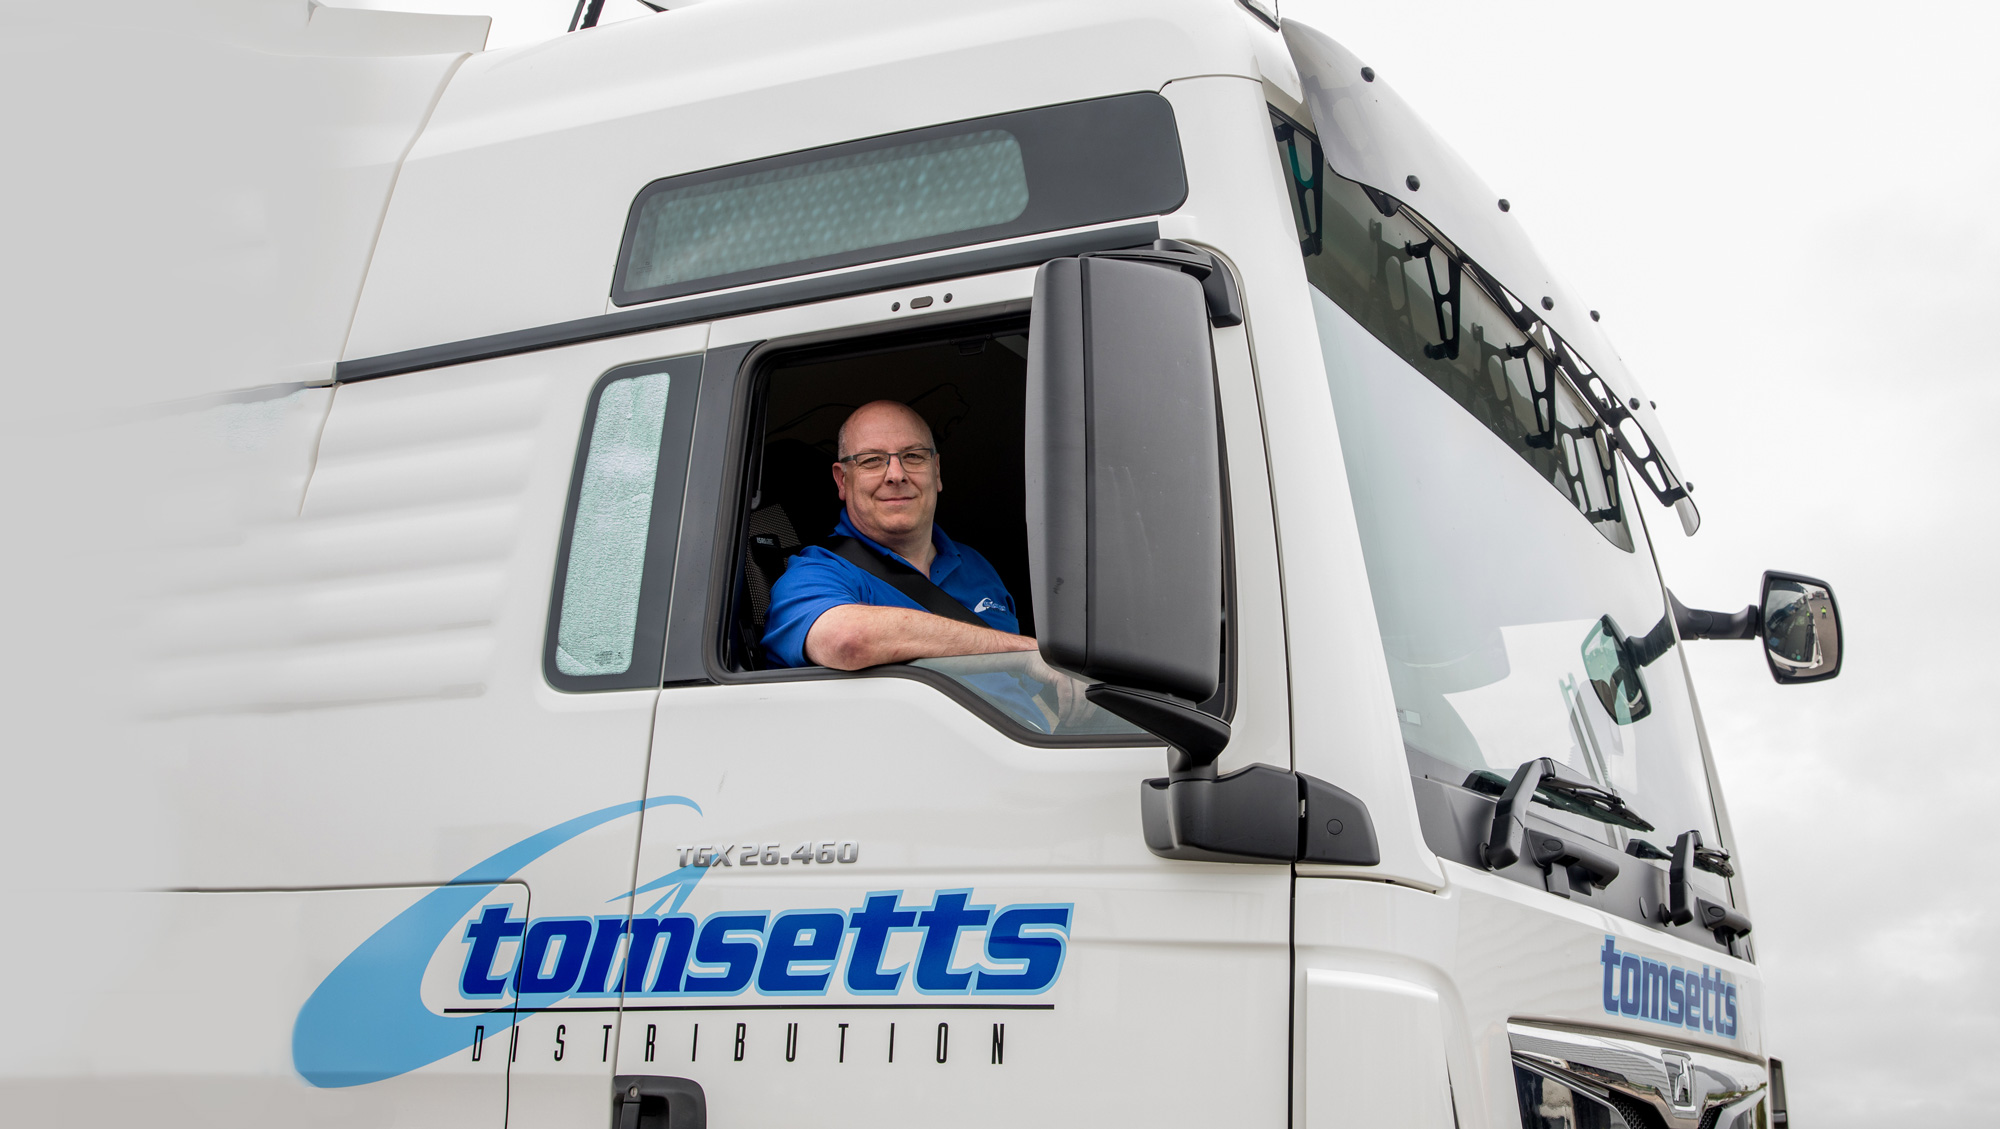 A lorry driver for Tomsetts pallet distribution poses for a picture within his new Tomsetts lorry